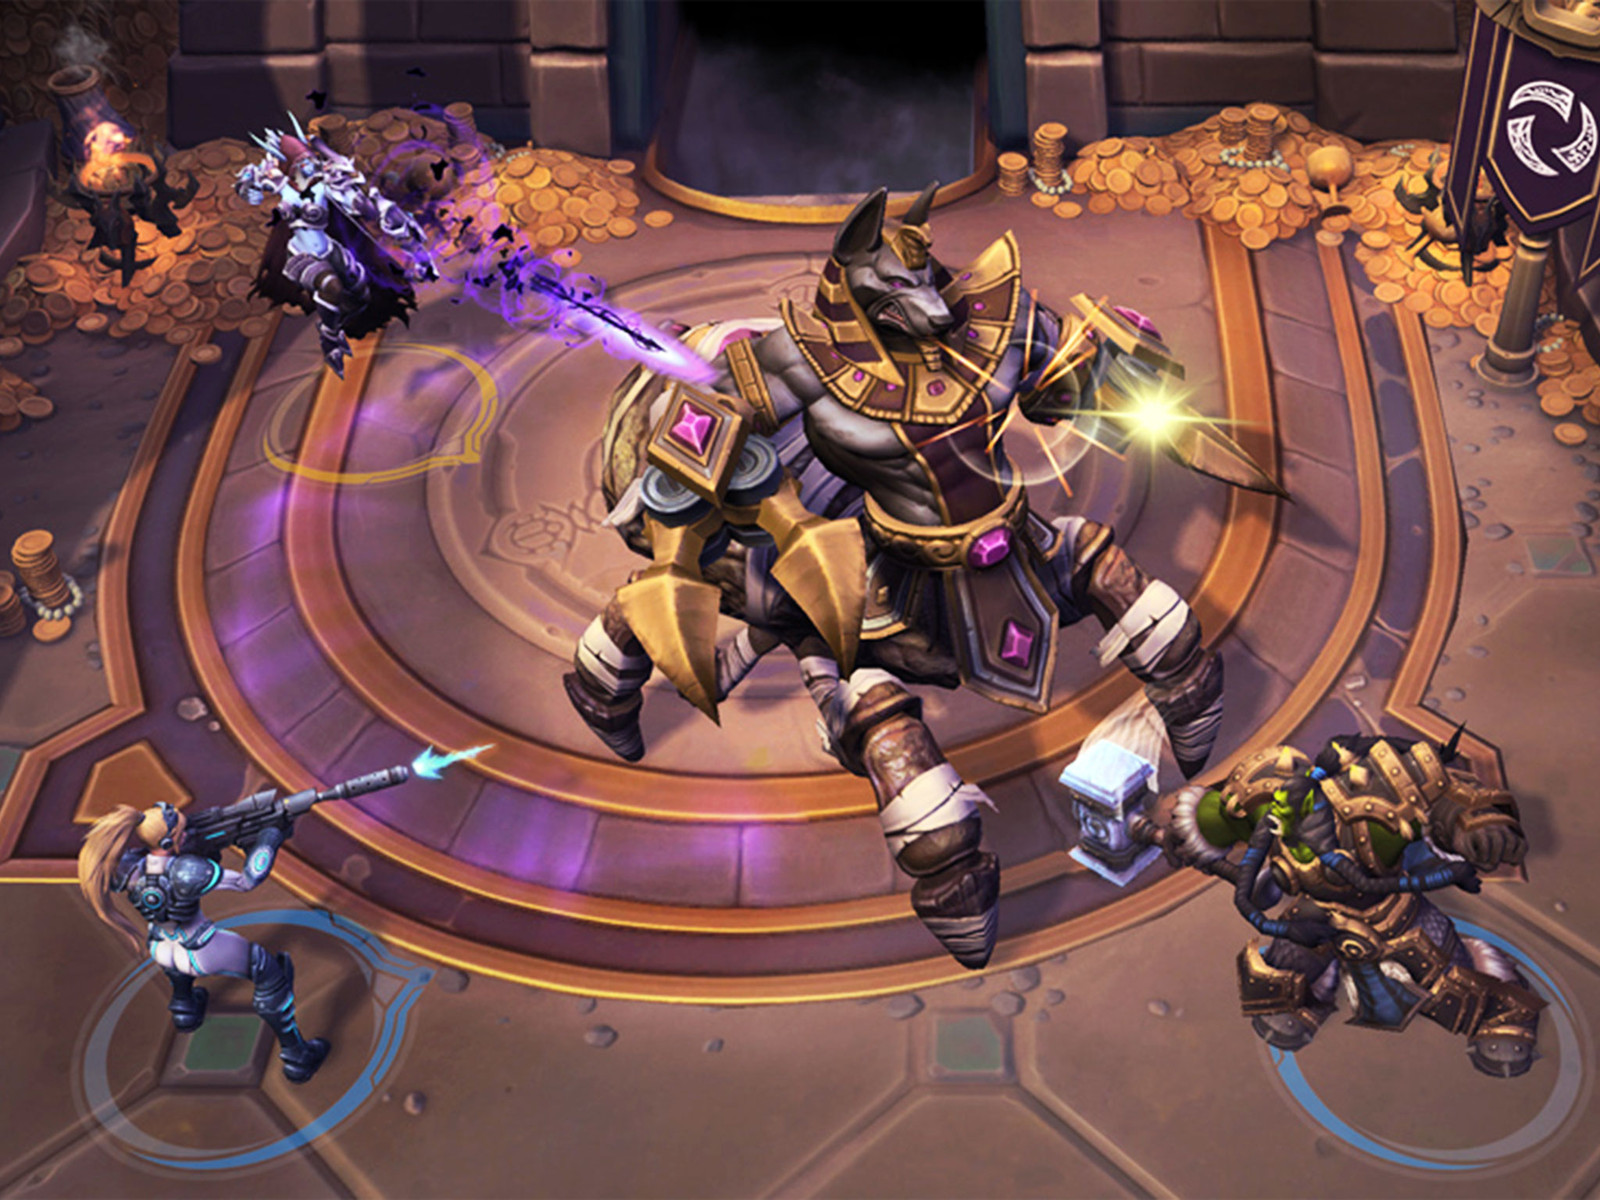 Heroes of the Storm: Tips and tricks on collecting gold fast without handing Blizzard your wallet